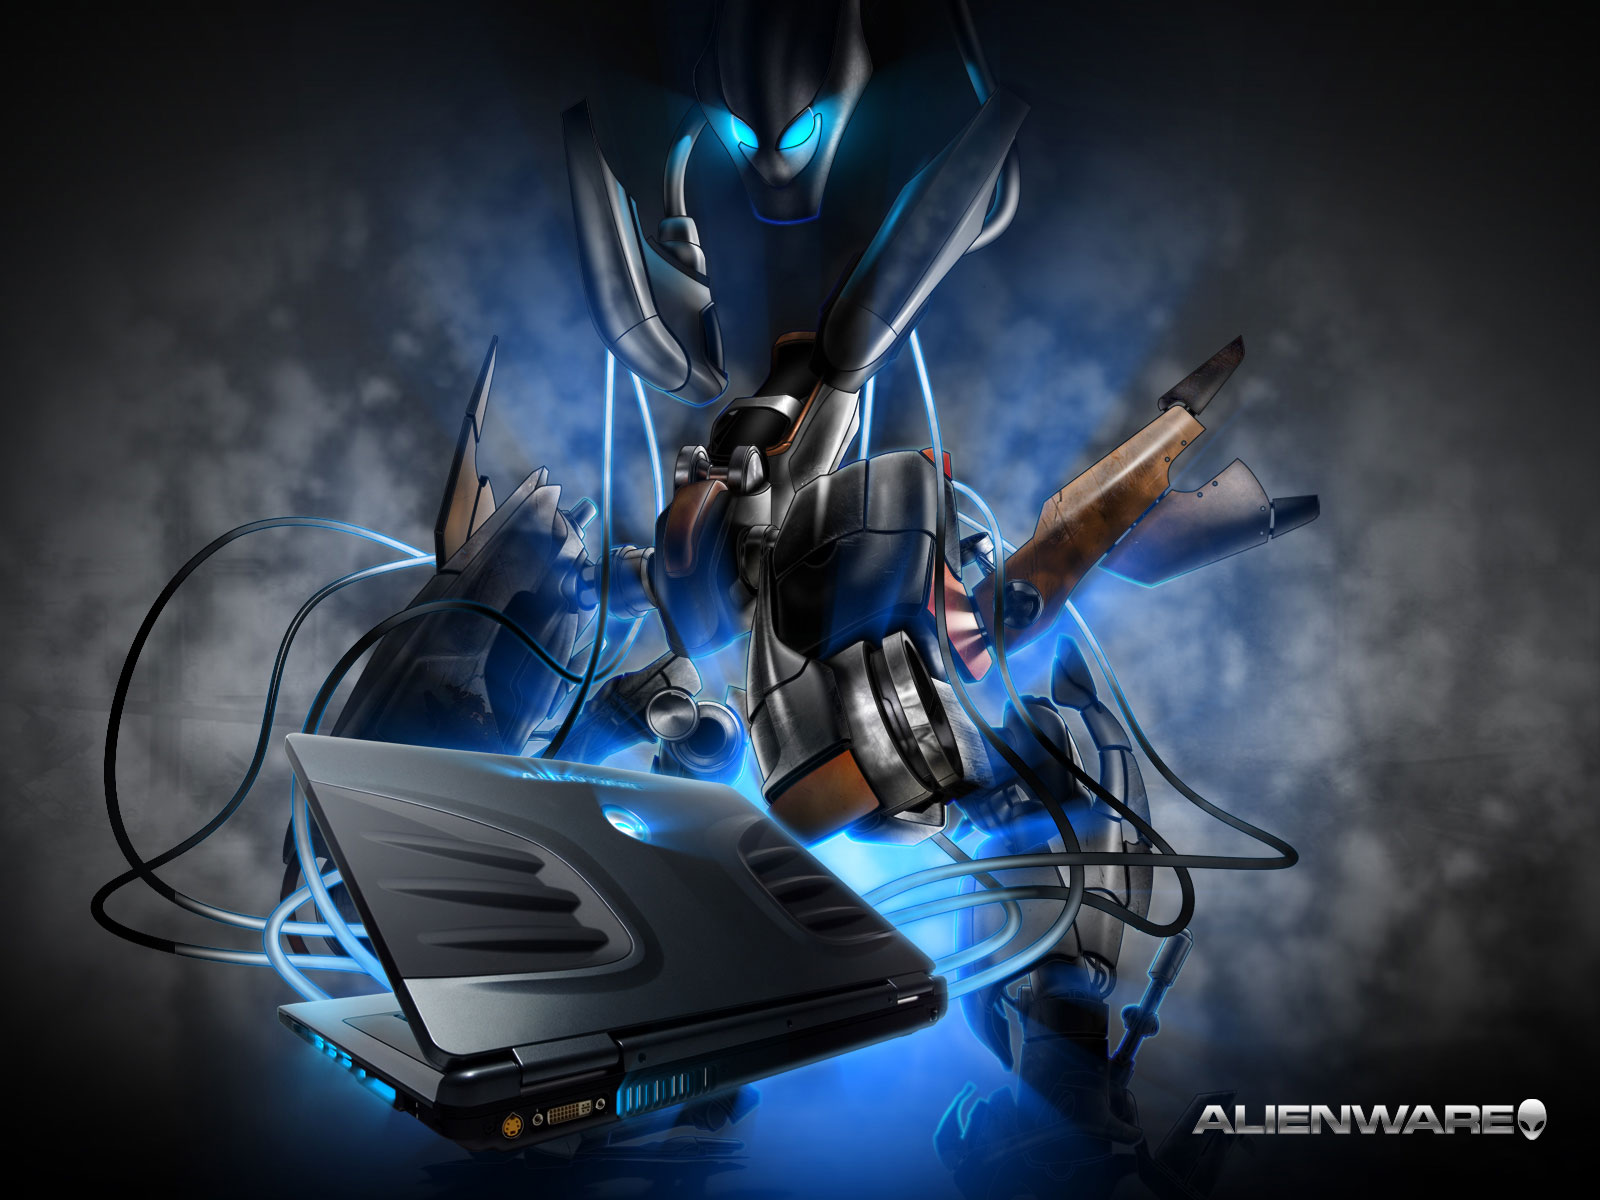 Free Alienware Laptop Wallpaper Wallpaper